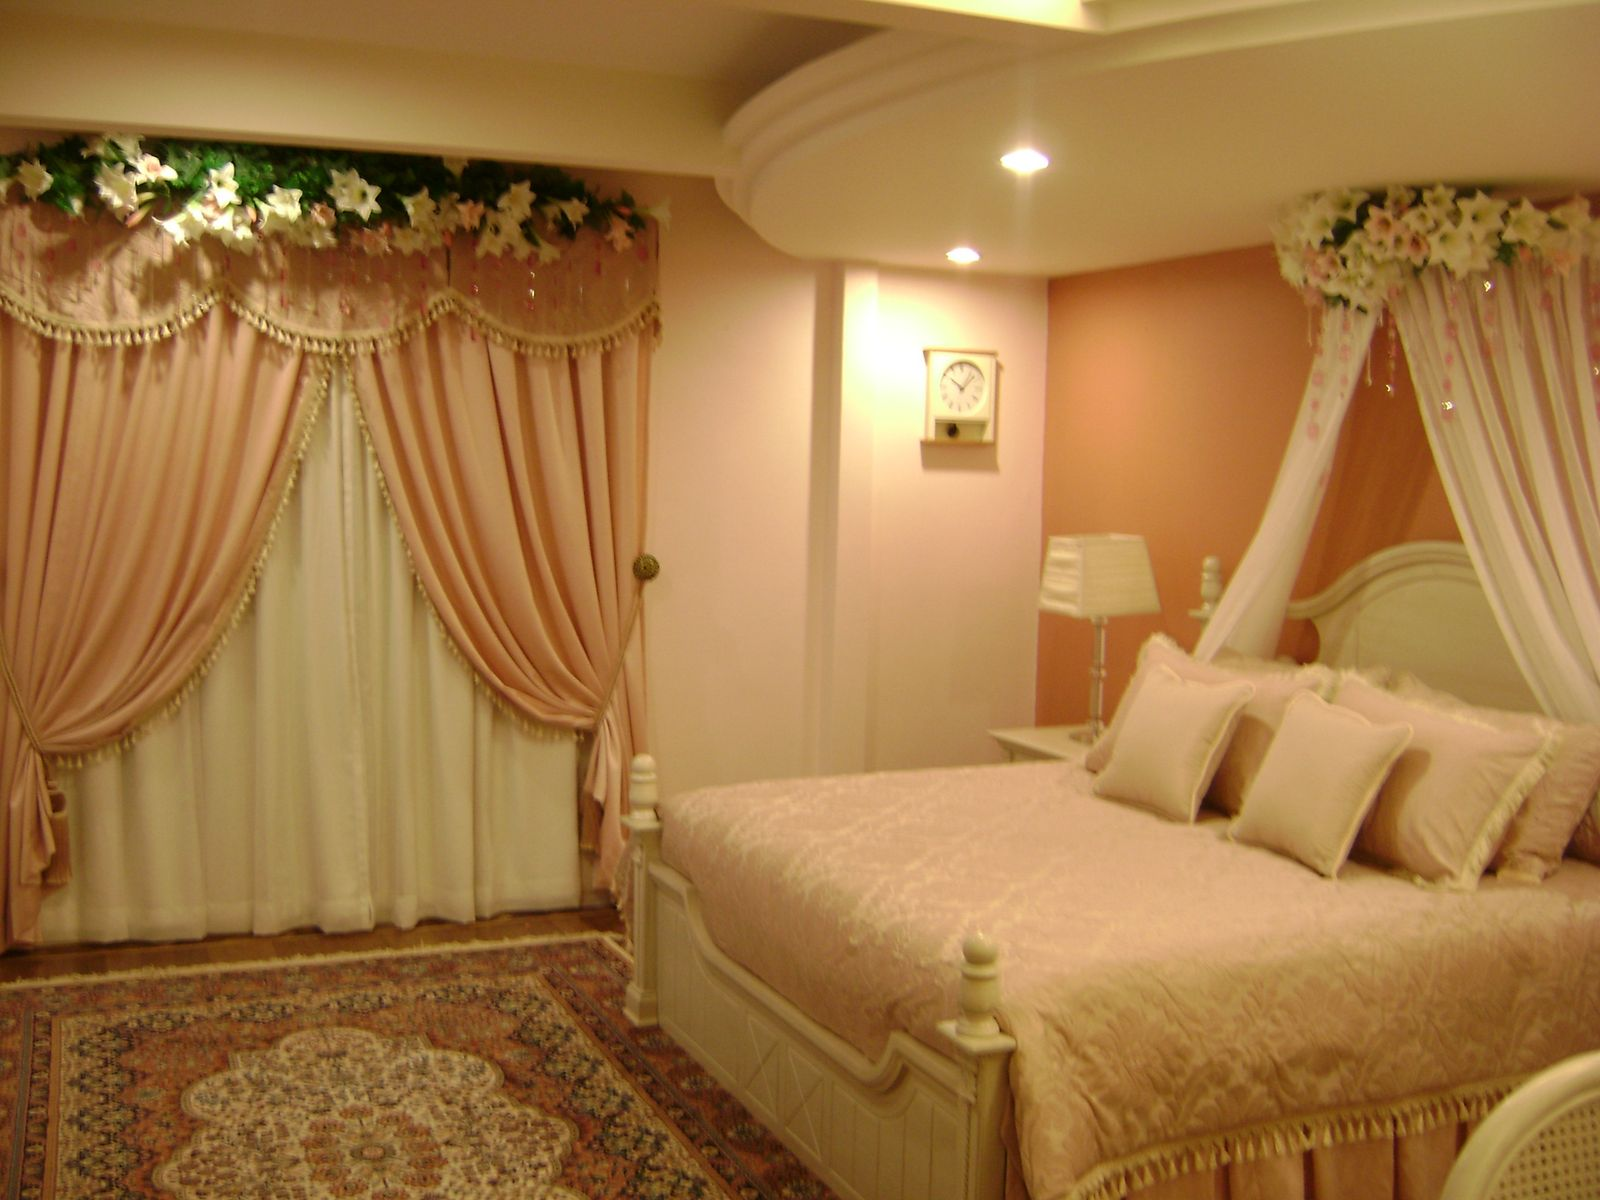 Girlsvilla wedding room decoration for Asian wedding bed decoration